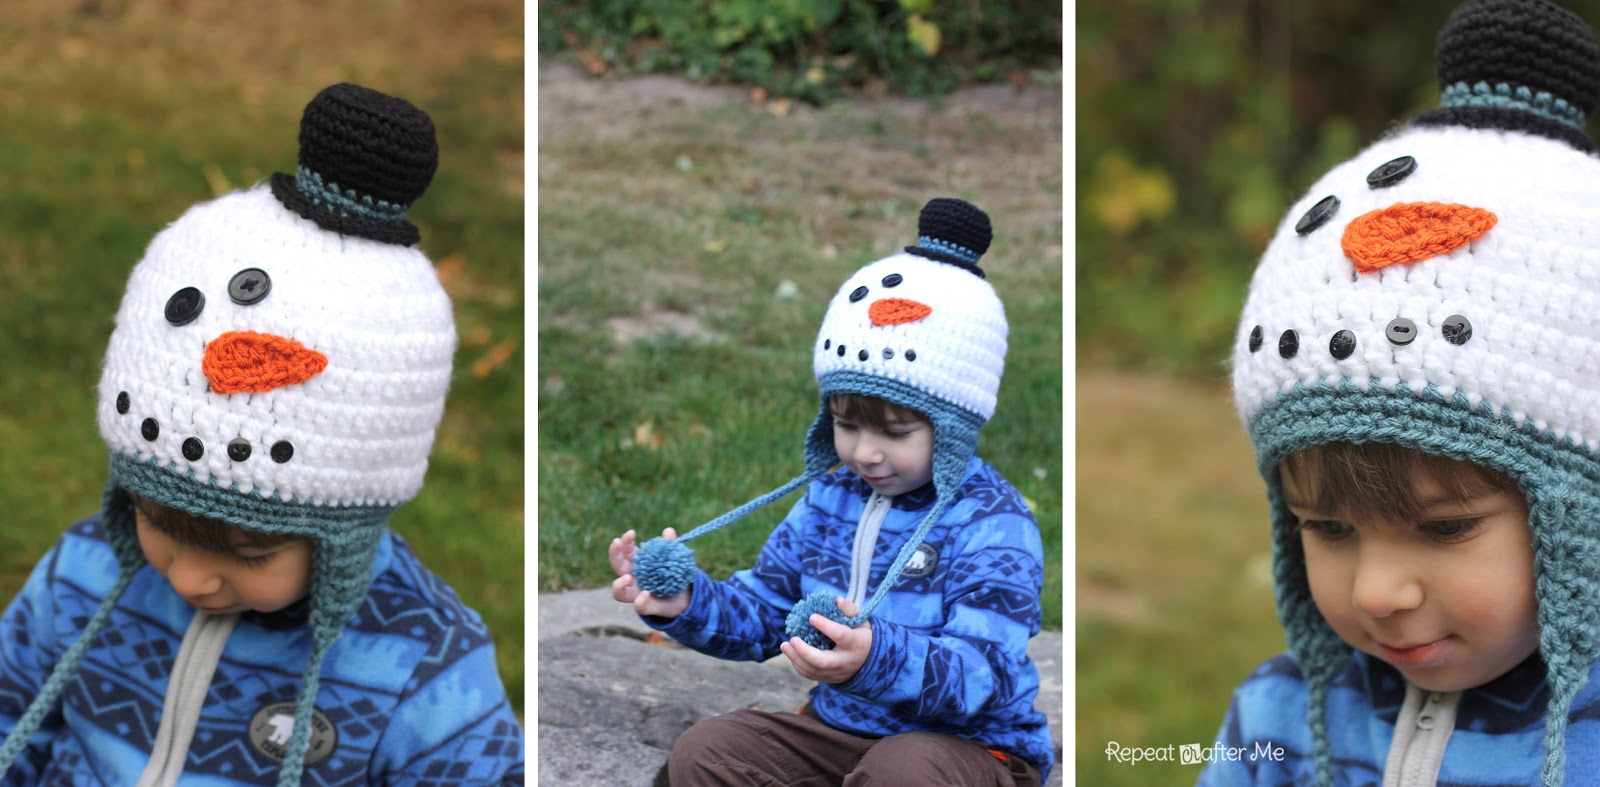 3fb0a22b63a Crochet Snowman Hat Pattern - Repeat Crafter Me